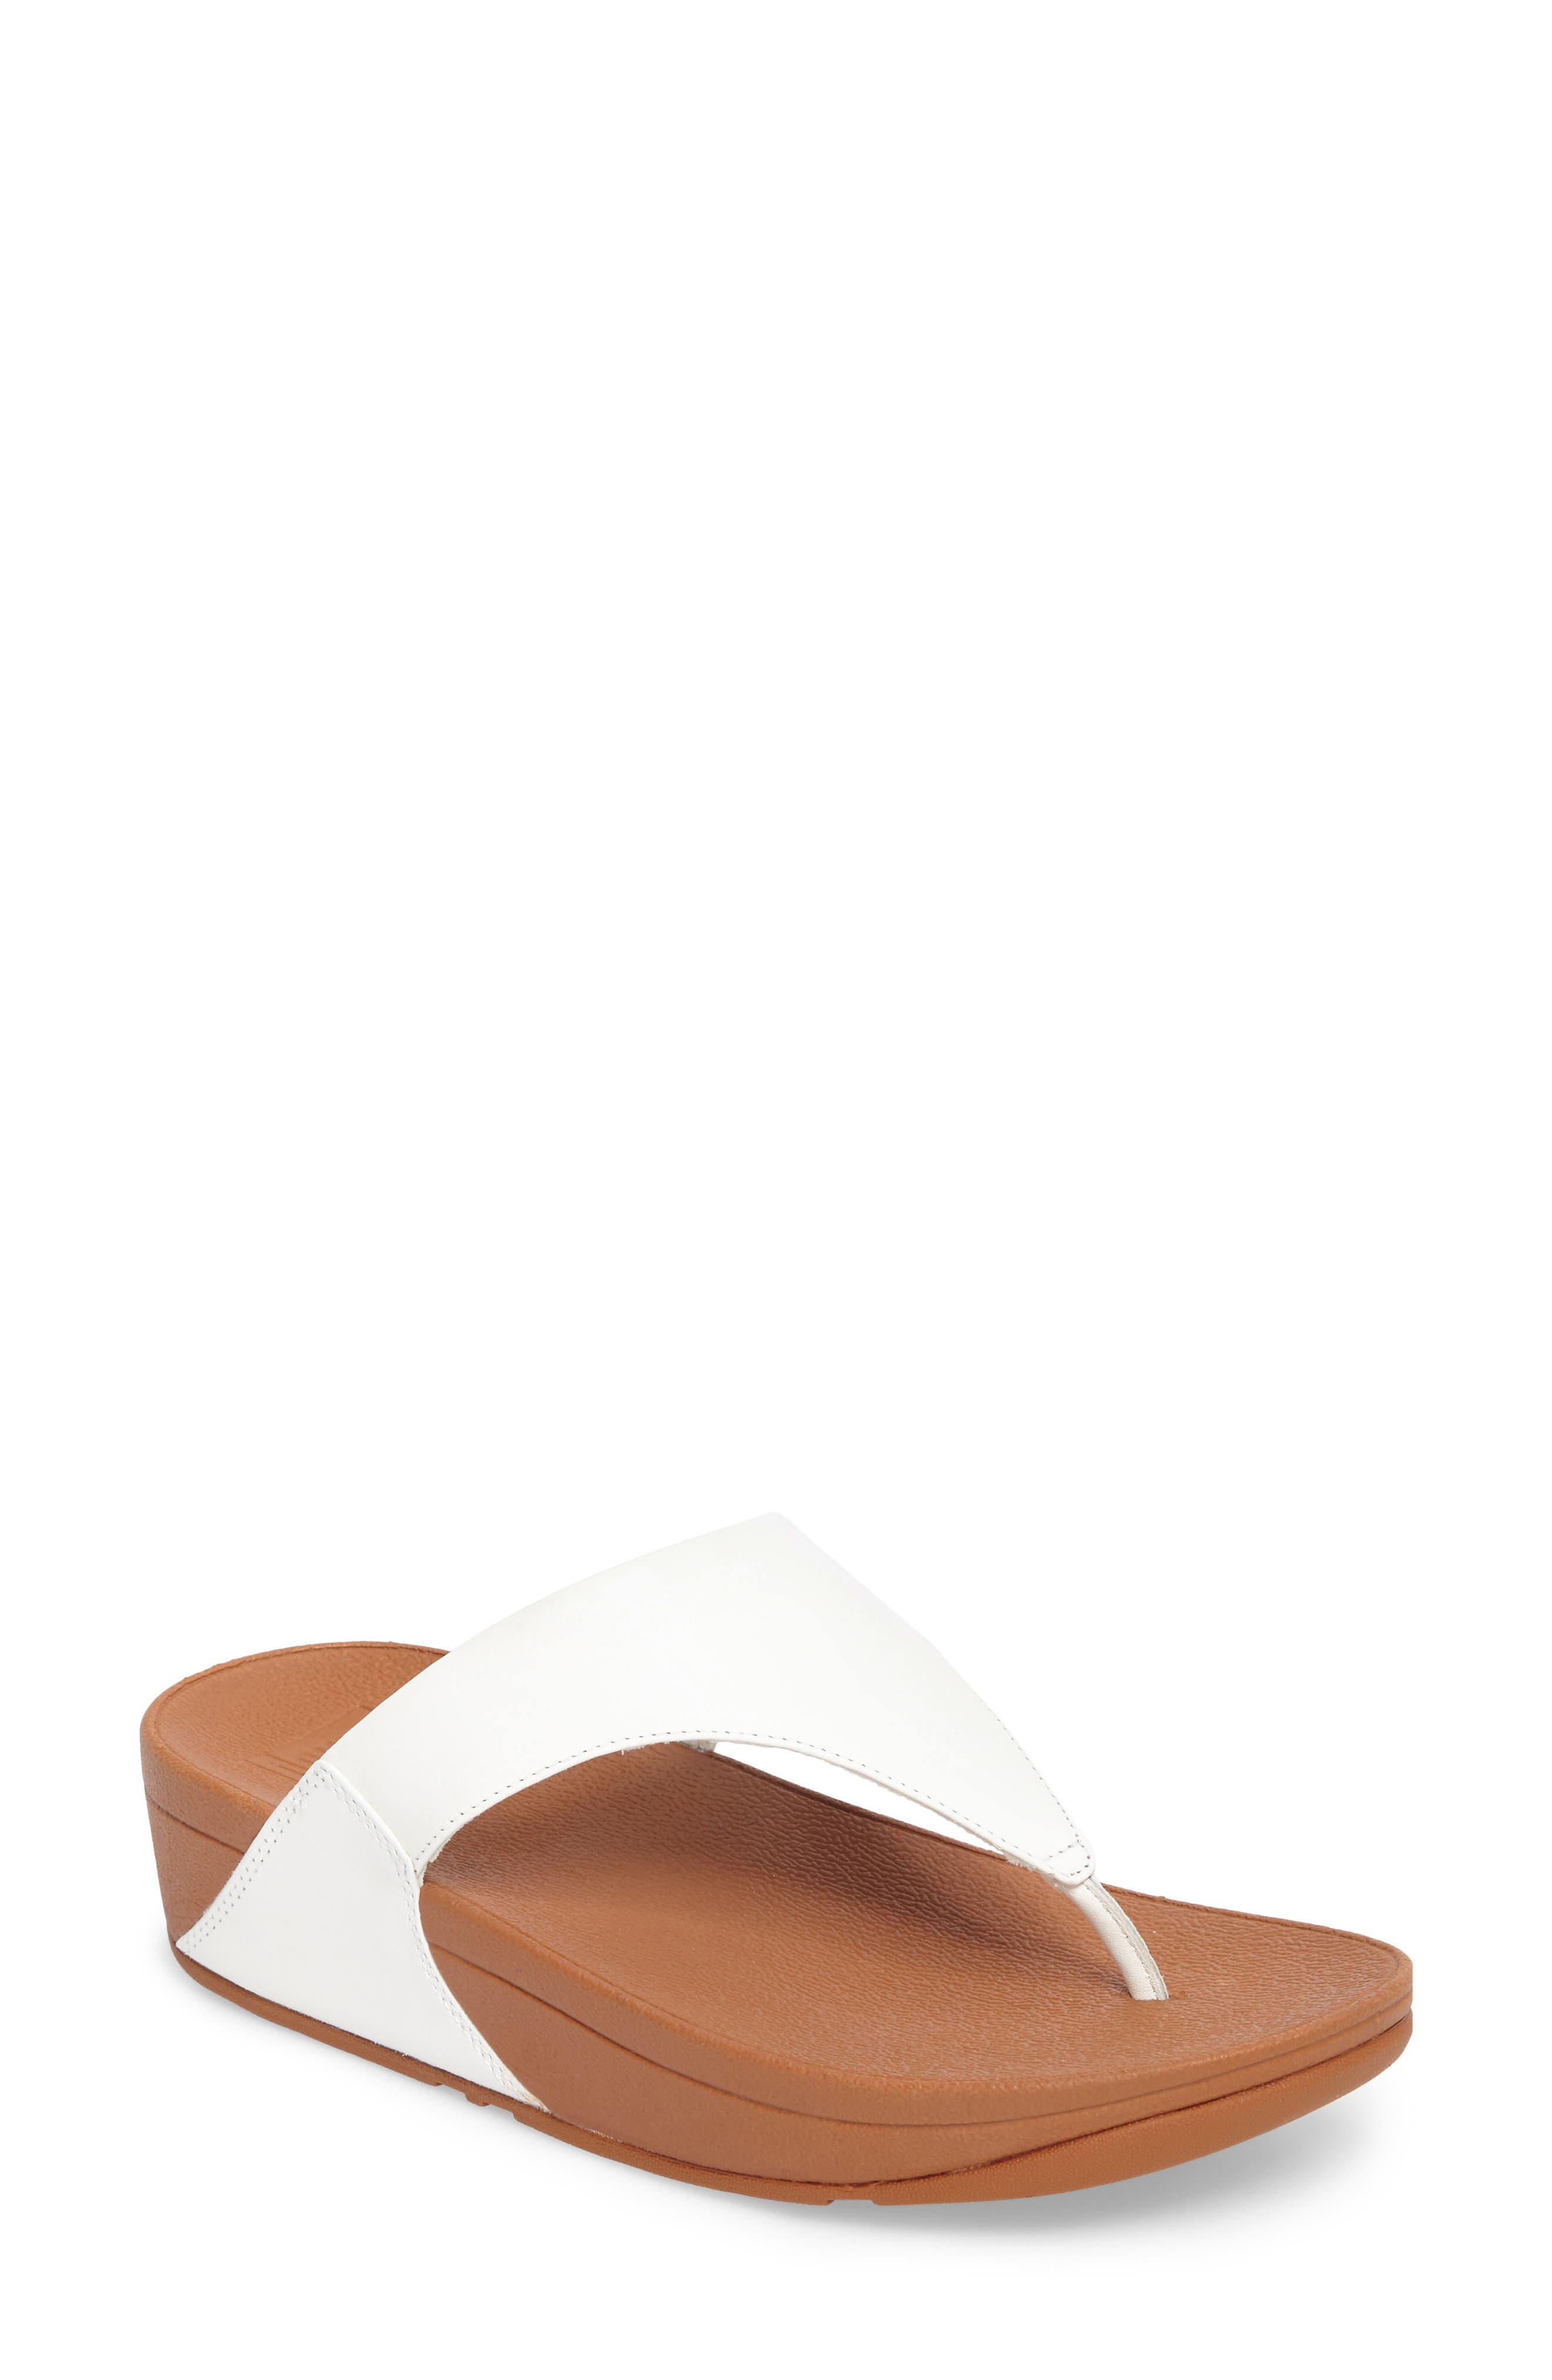 Lulu Fit Flop,                         Main,                         color, Urban White